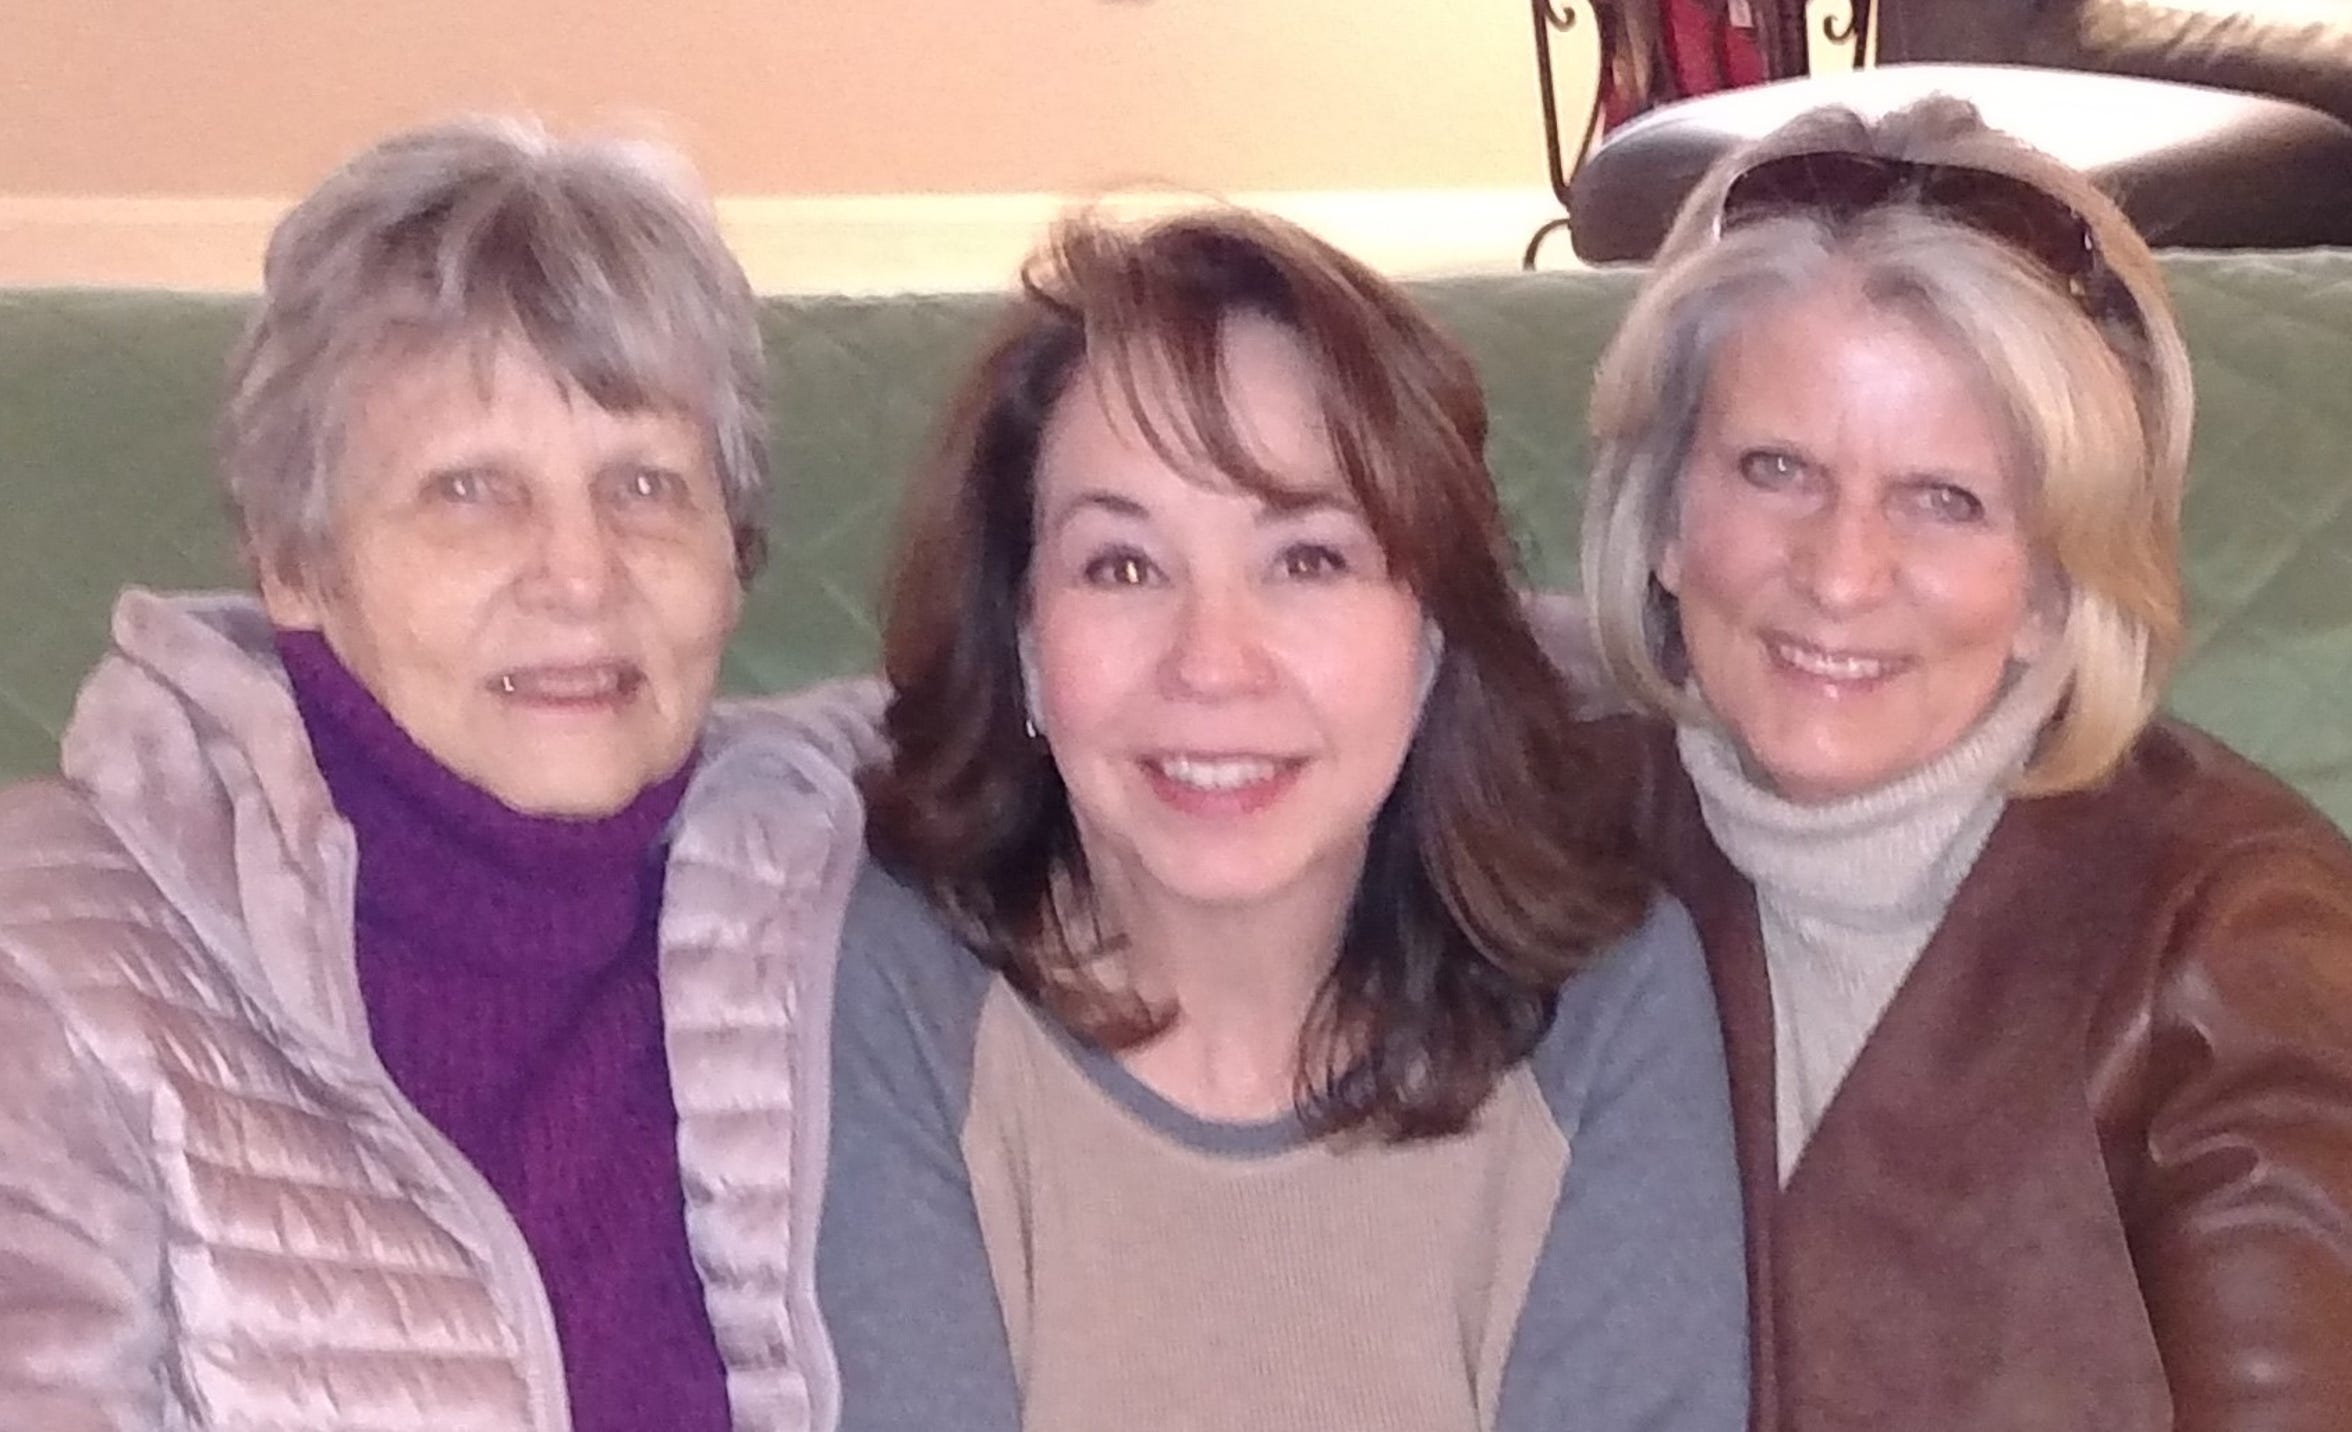 Loraine Gaines, left, Wendee Lowe, and Glenda Poling pose for a photo in January 2019 in Las Vegas, Nevada. It was the first trip in which Gaines and Poling met Lowe, their niece, since discovering they were related to her.